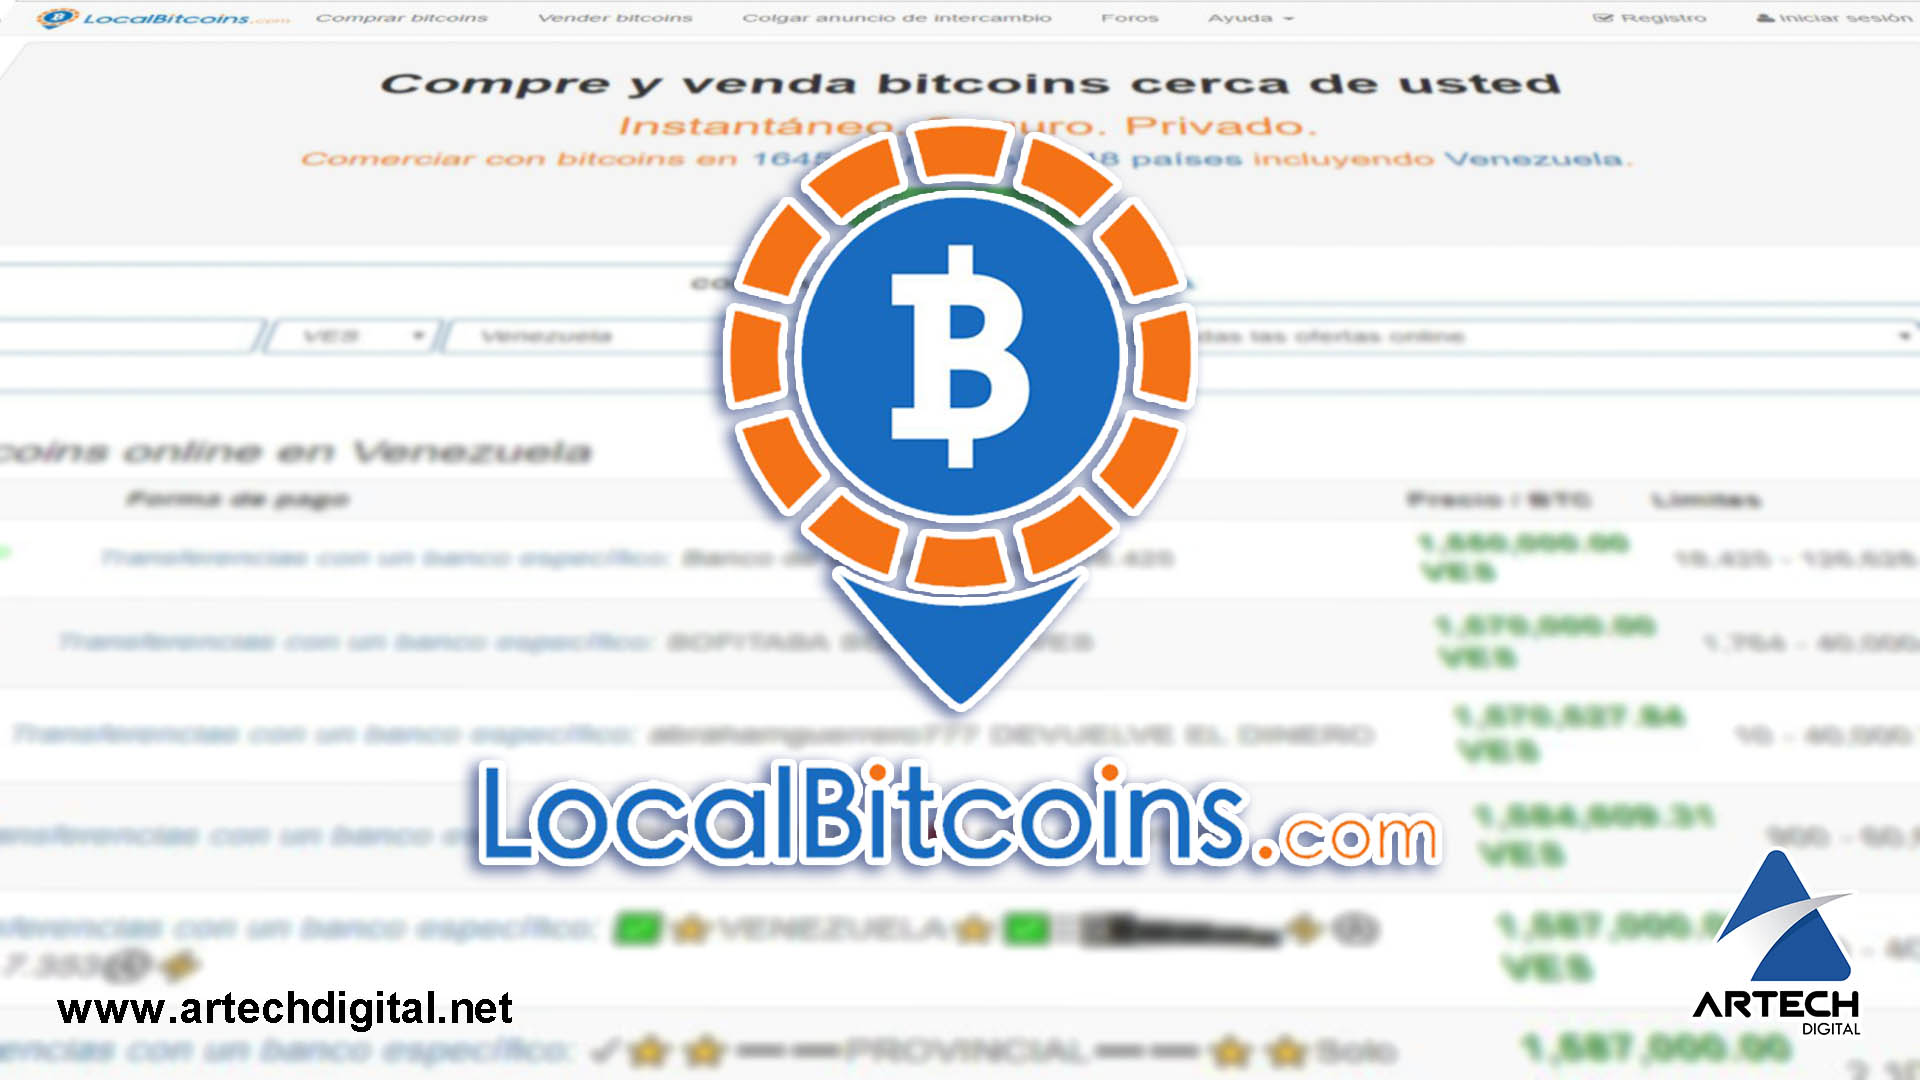 LocalBitcoin: Venezuela's Favorite Buying and Selling Platform